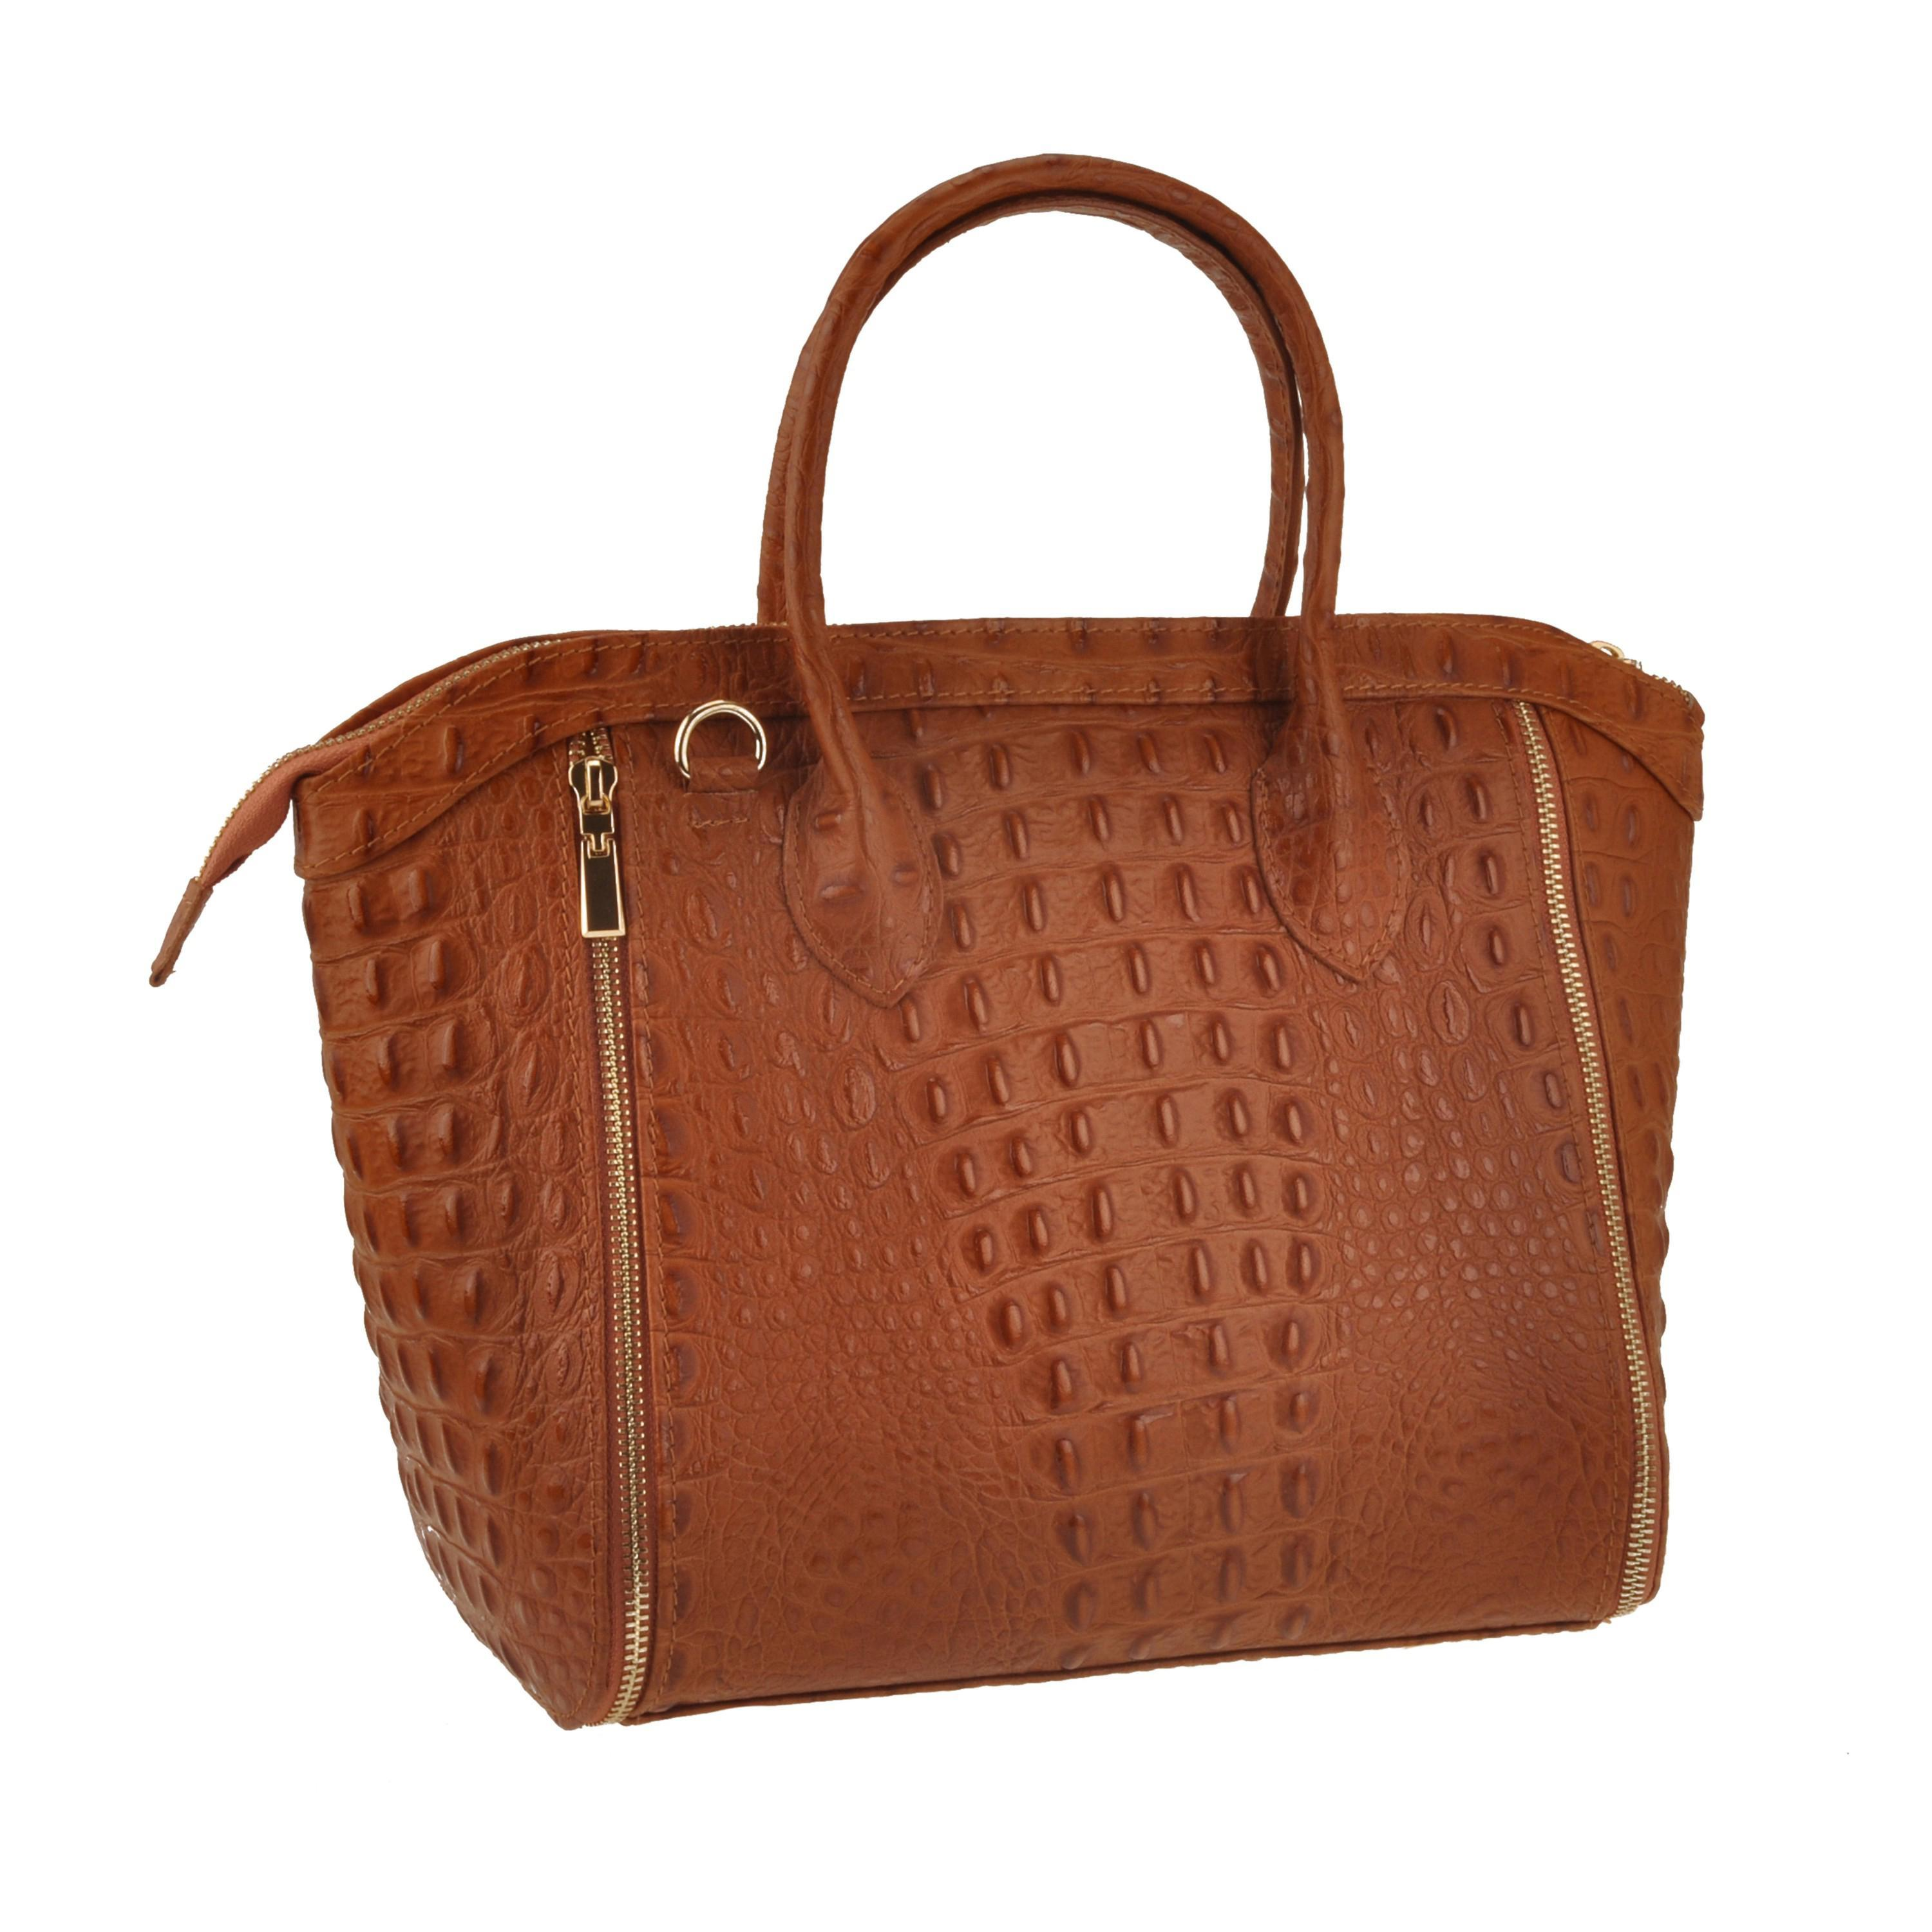 Borsa donna 669090XE - VERA PELLE MADE IN ITALY LEATHER BAG - made ... 5023dfe70ef